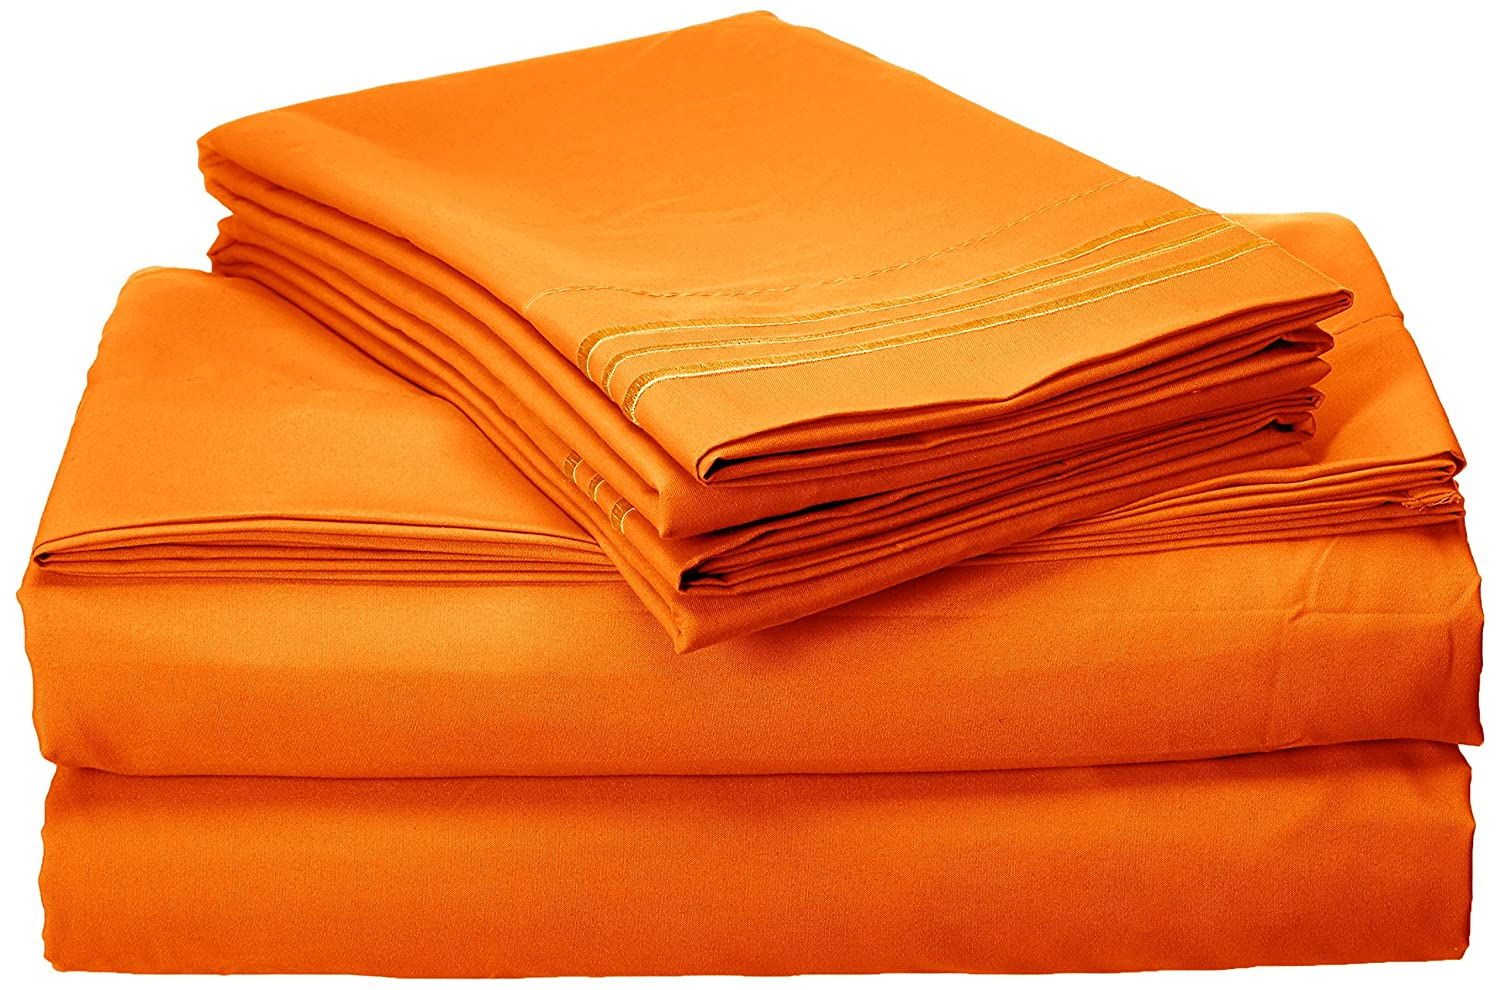 4-Piece Sheet Set, California King, Elite Orange